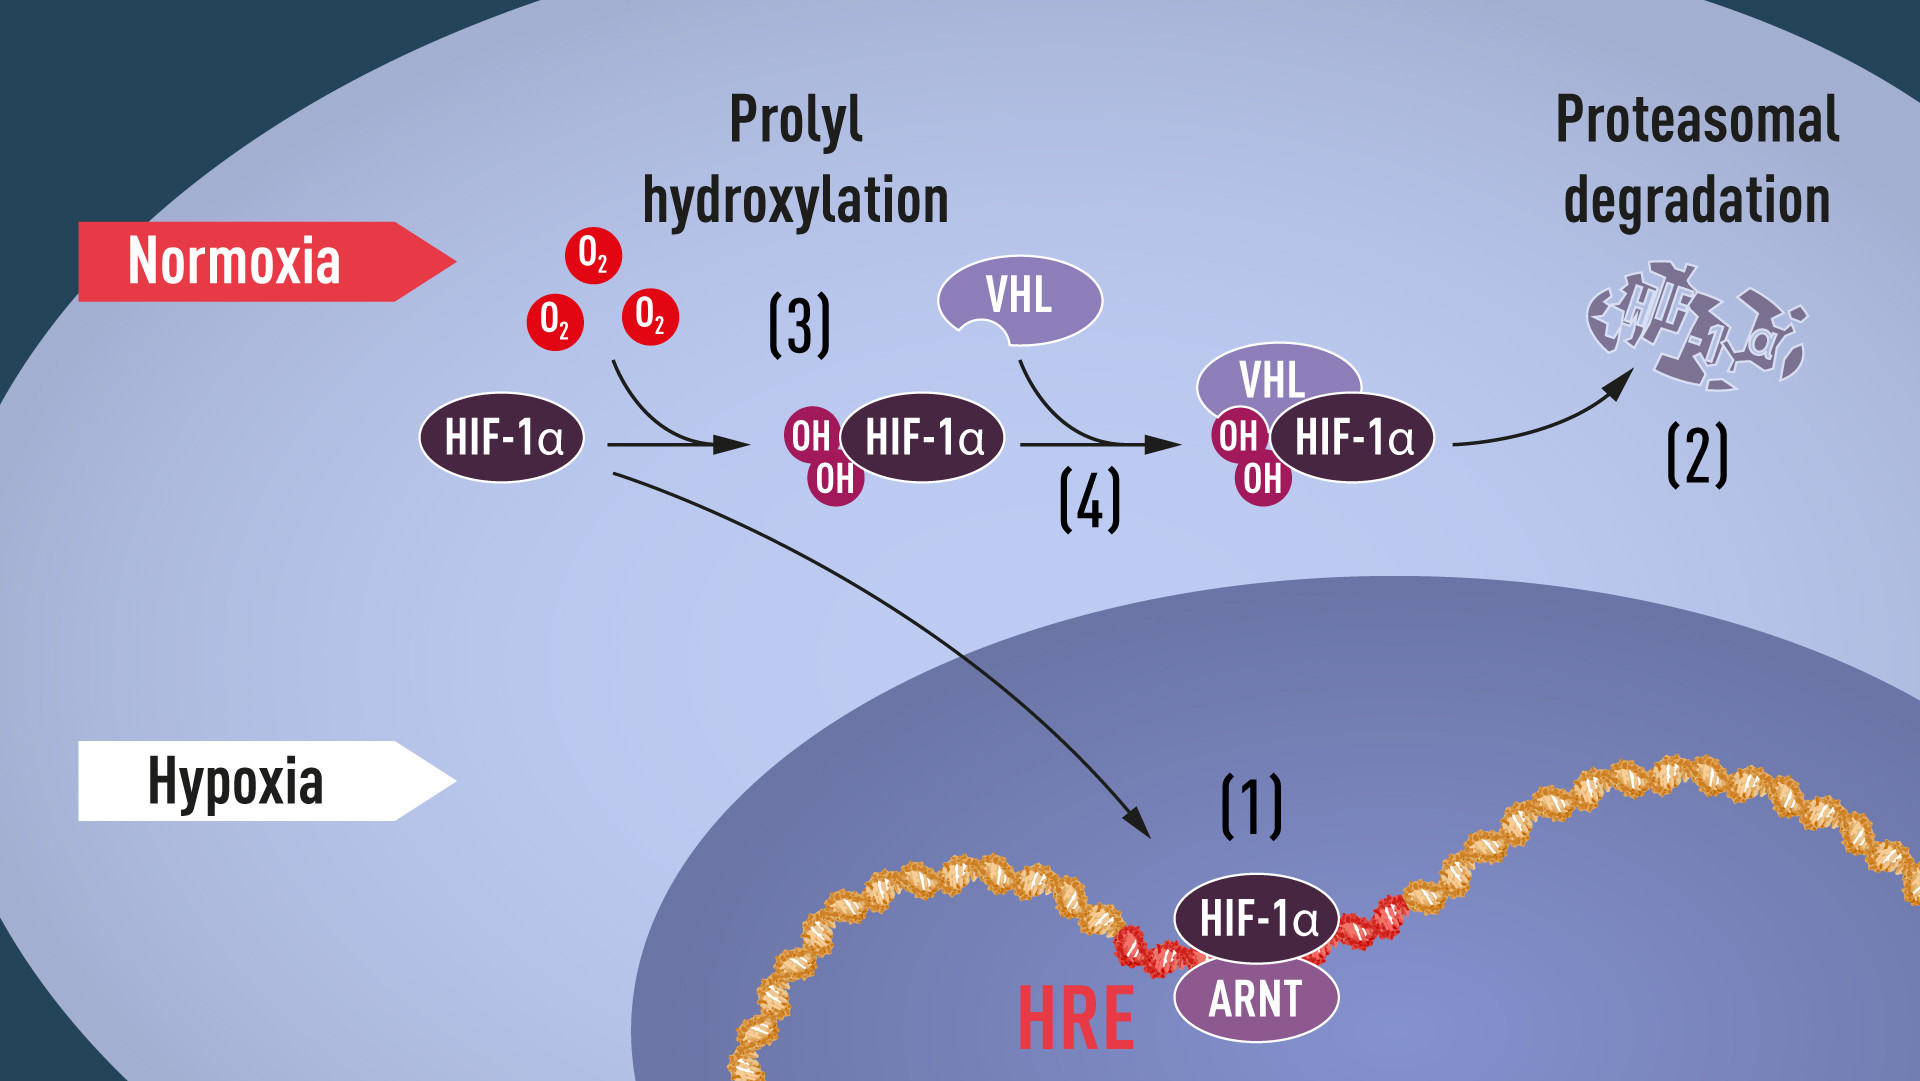 Figure 1. When oxygen levels are low (hypoxia), HIF-1α is protected from degradation and accumulates in the nucleus, where it associates with ARNT and binds to specific DNA sequences (HRE) in hypoxia-regulated genes (1). At normal oxygen levels, HIF-1α is rapidly degraded by the proteasome (2). Oxygen regulates the degradation process by the addition of hydroxyl groups (OH) to HIF-1α (3). The VHL protein can then recognize and form a complex with HIF-1α leading to its degradation in an oxygen-dependent manner (4).